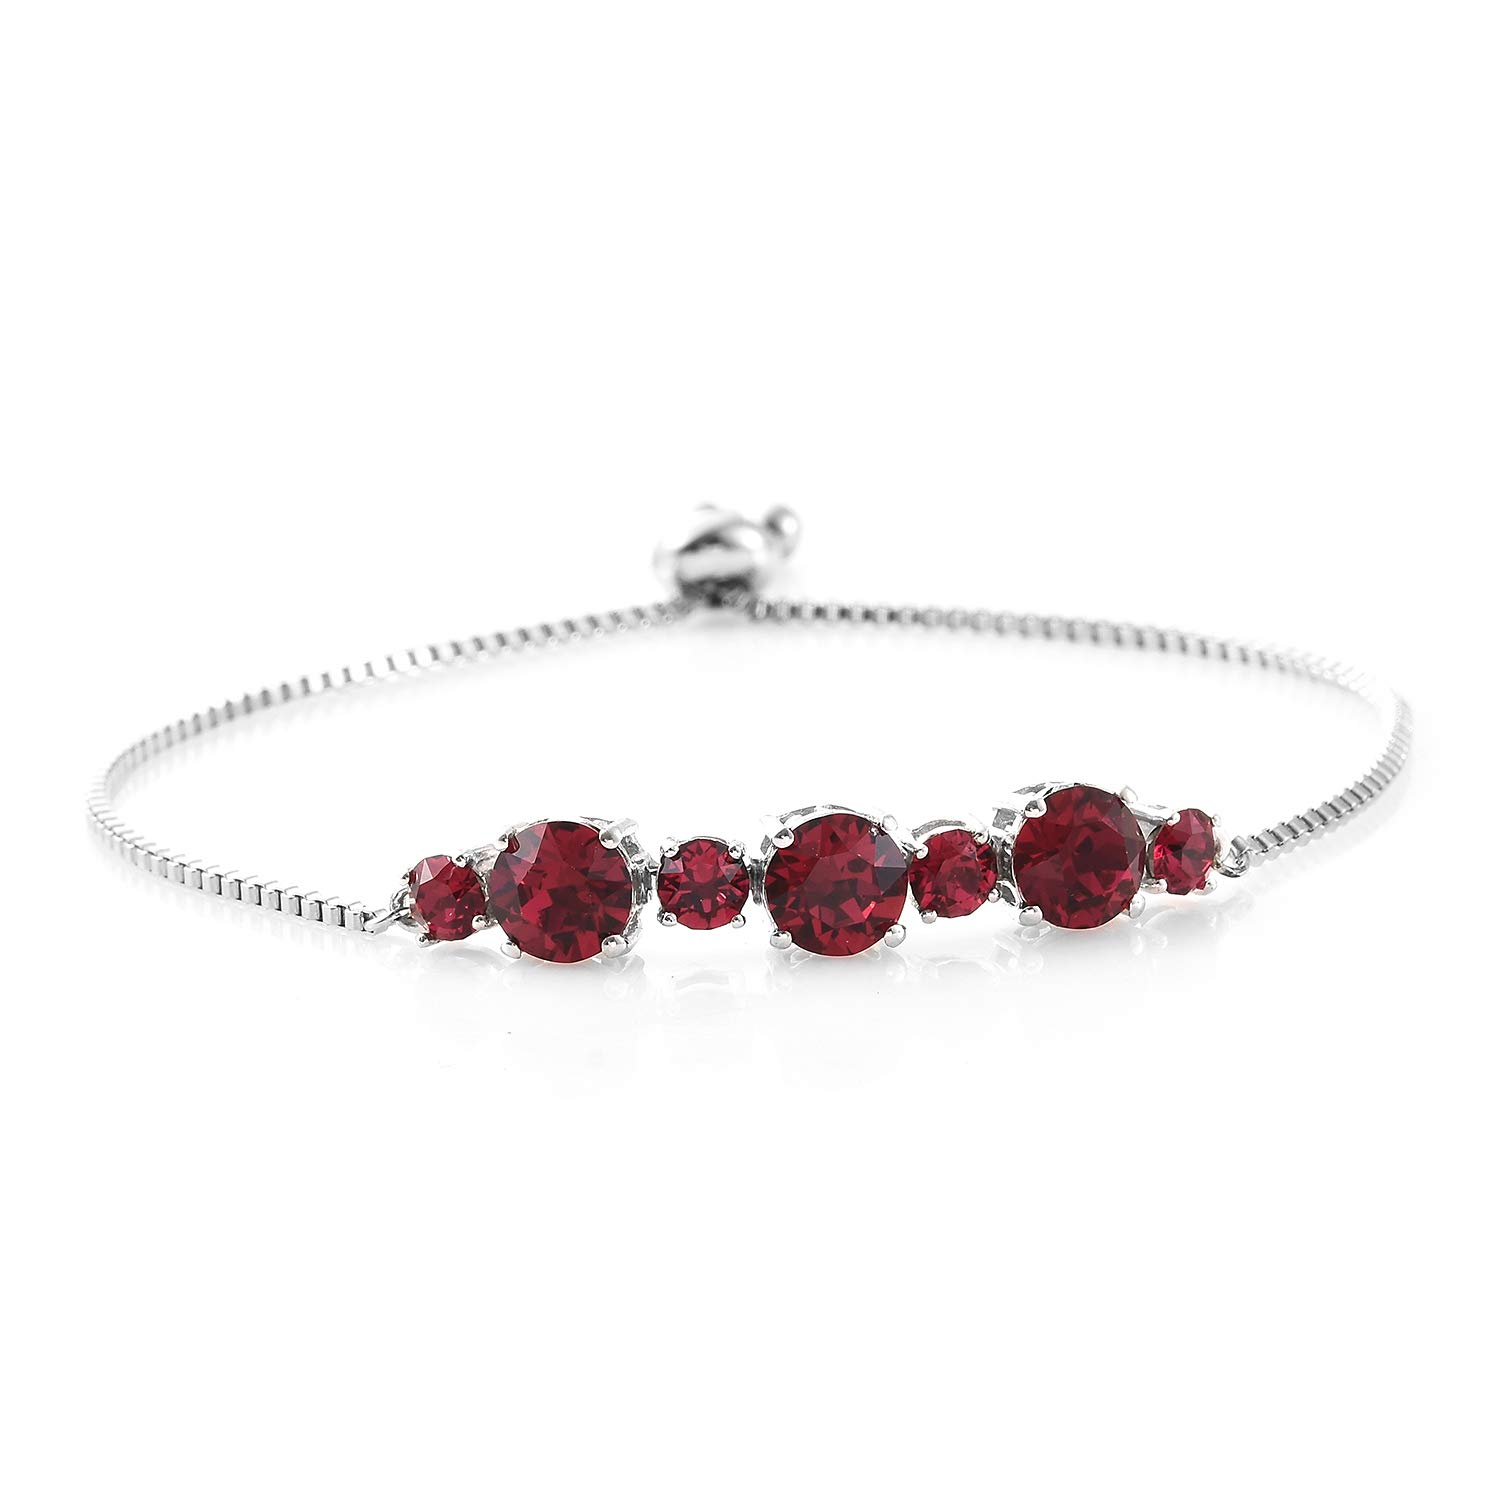 Shop LC Delivering Joy Made with Swarovski Ruby Crystal Round Bolo Bracelet for Women Jewelry Cttw 3.8 Adjustable